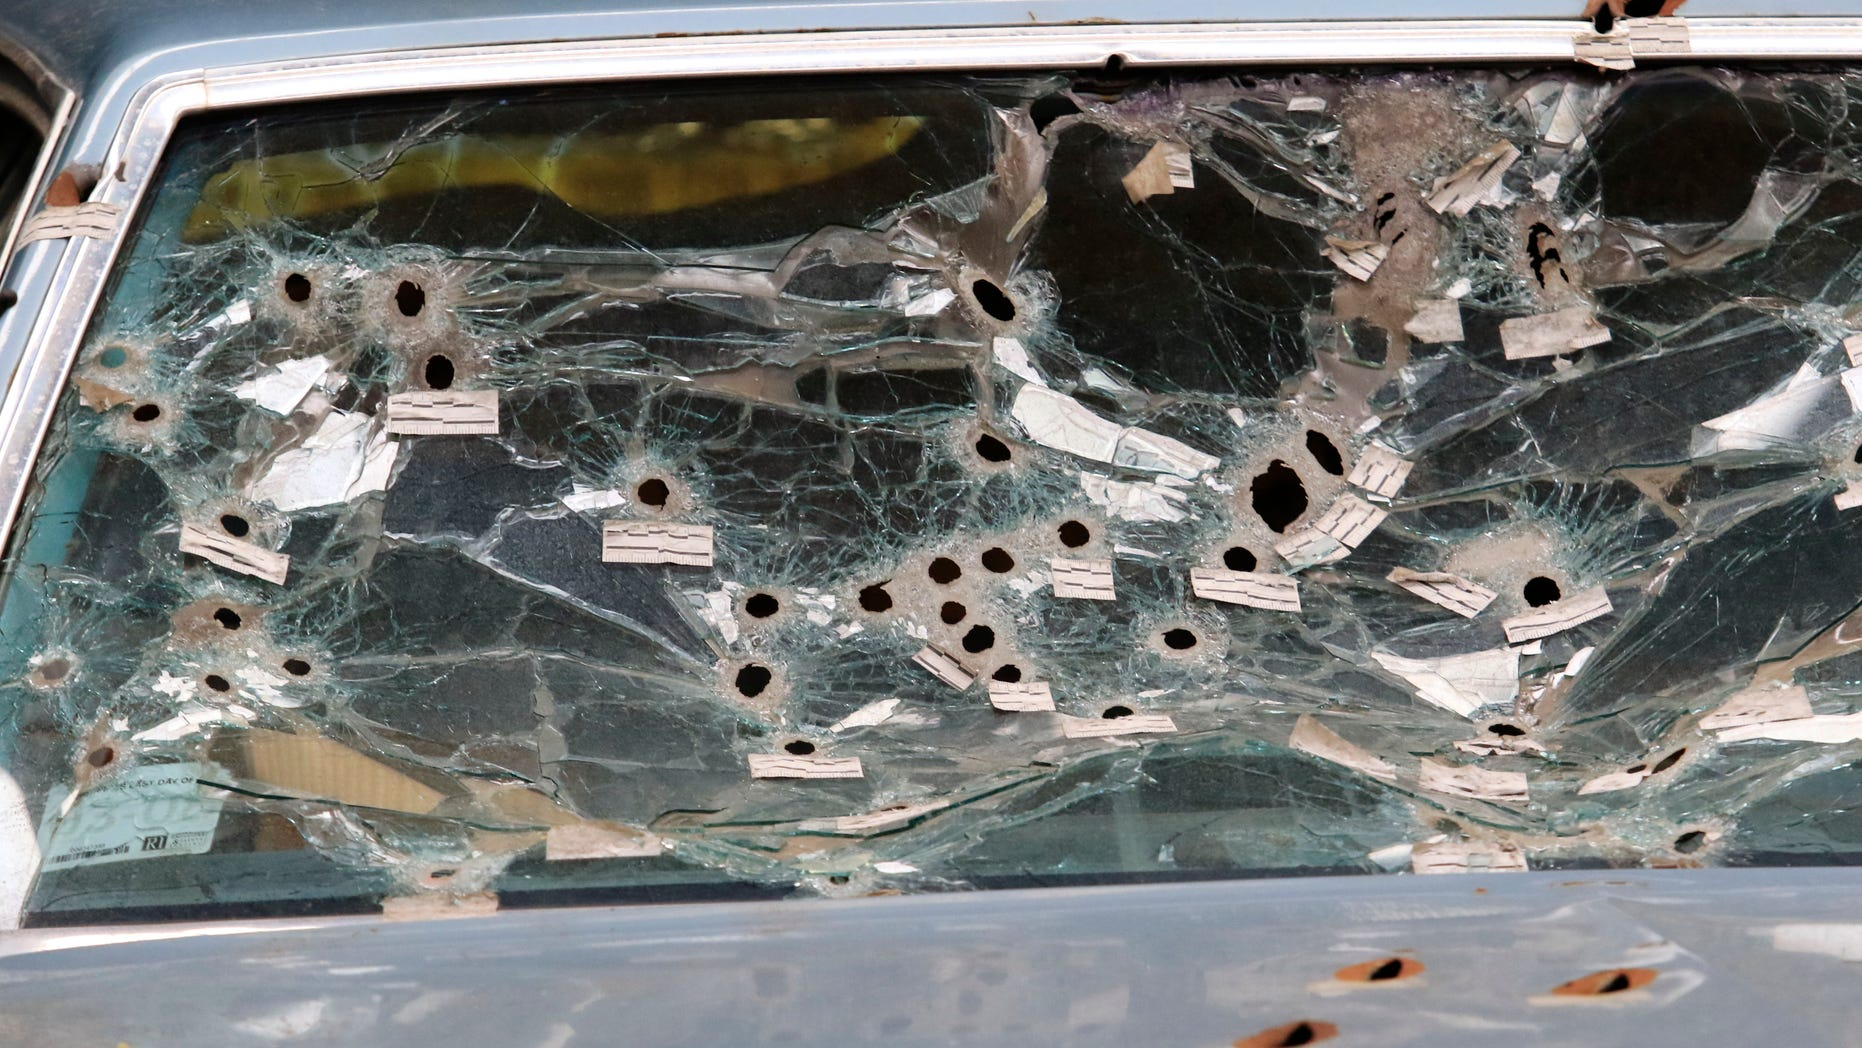 The front windshield of the car driven by Timothy Russell.